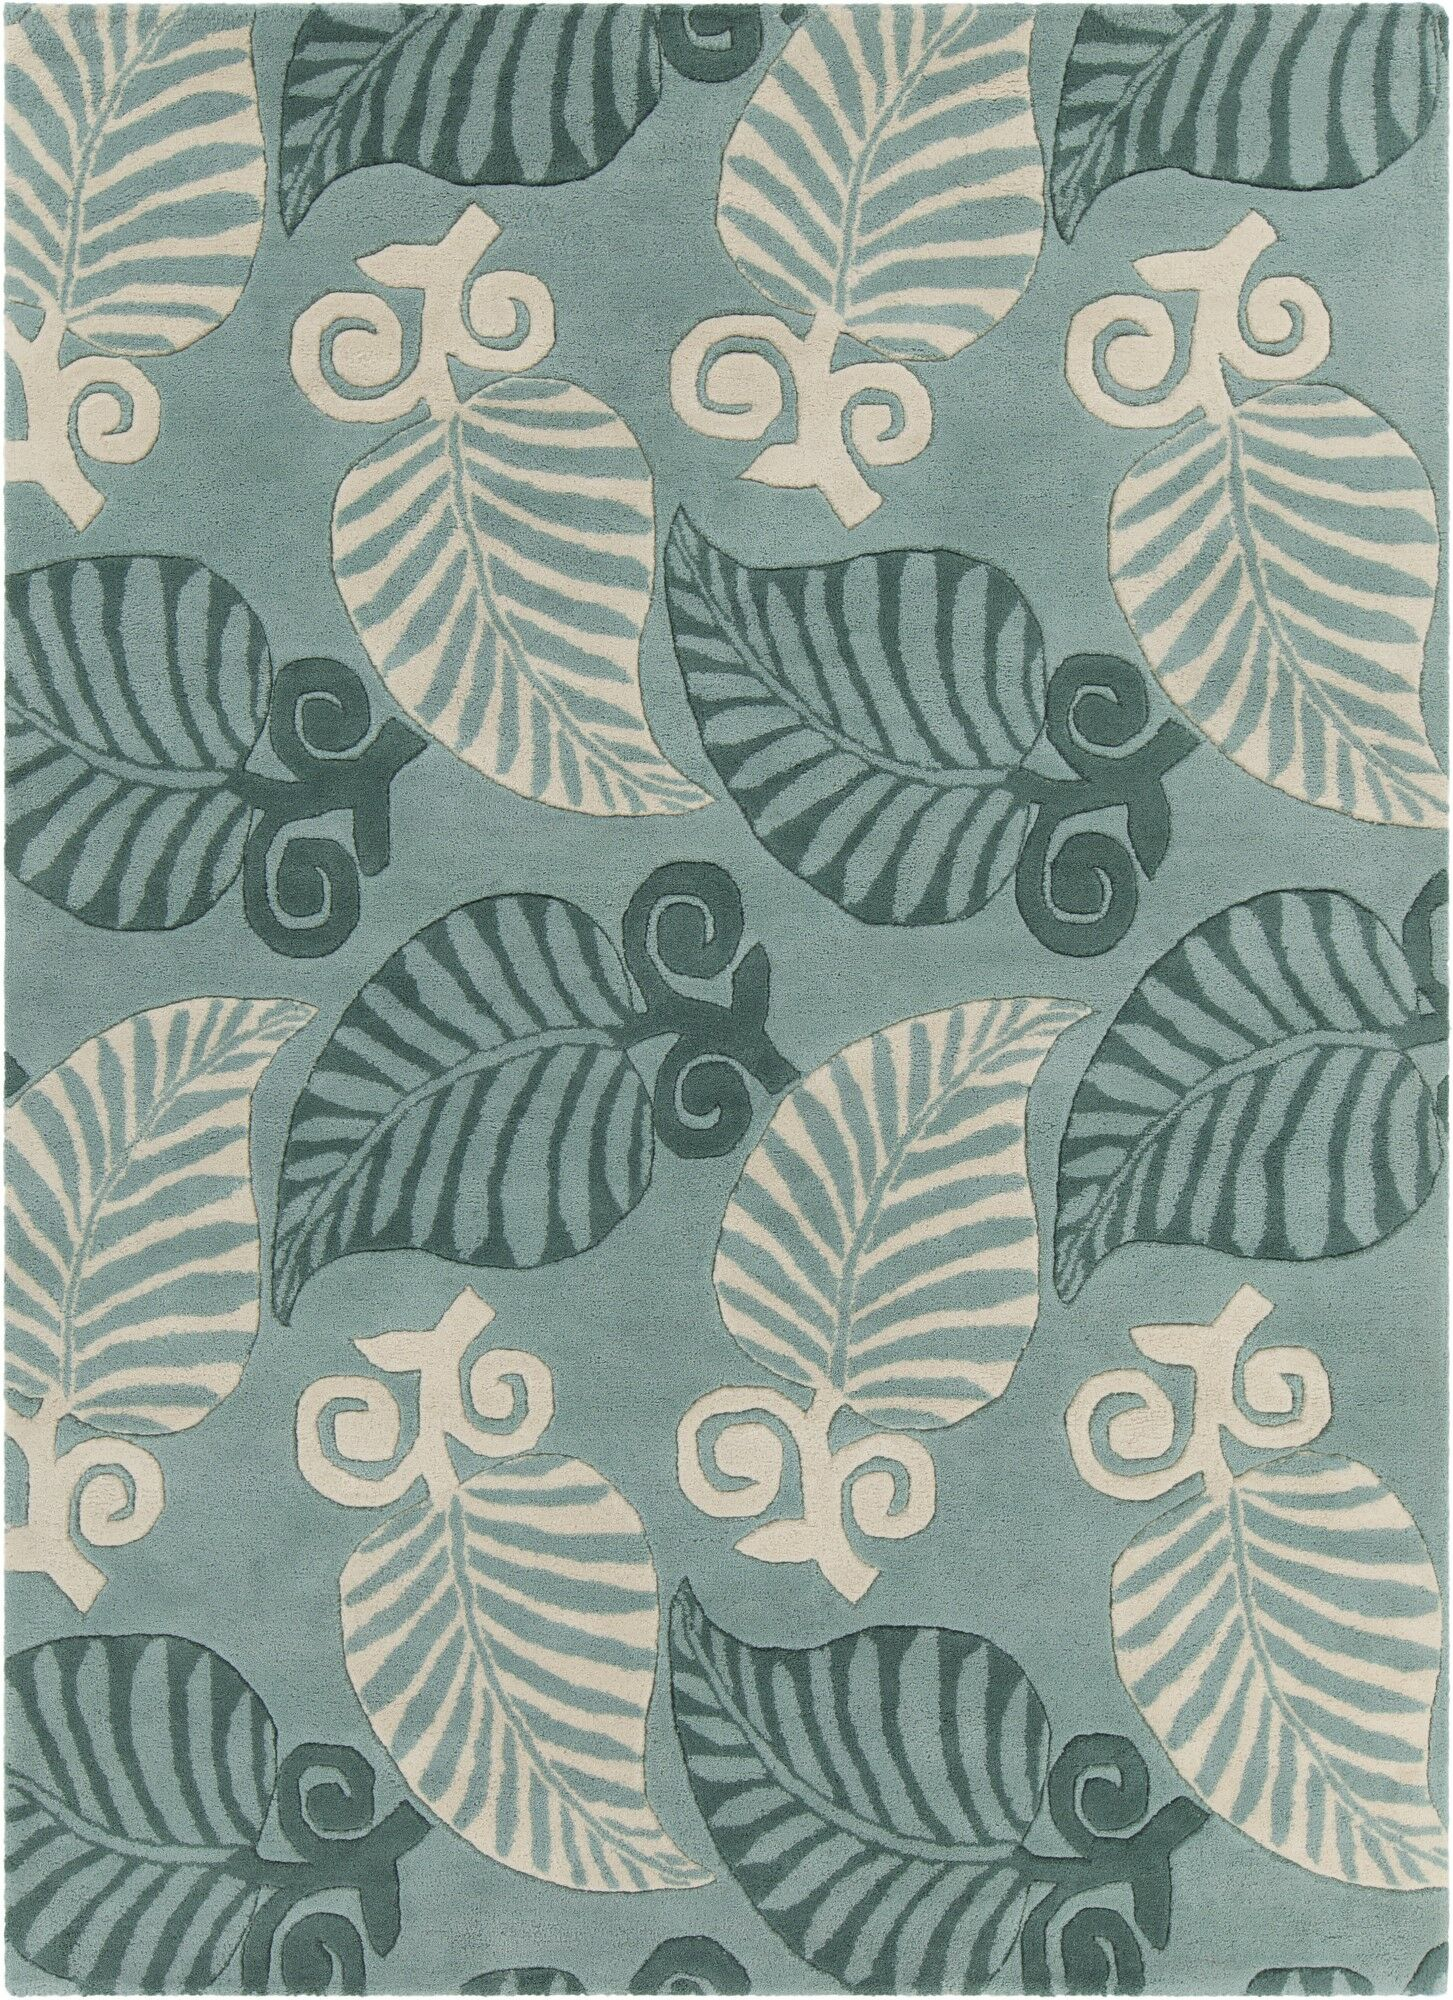 Arcadia Hand Tufted Rectangle Transitional Green/Cream Area Rug Rug Size: 5' x 7'